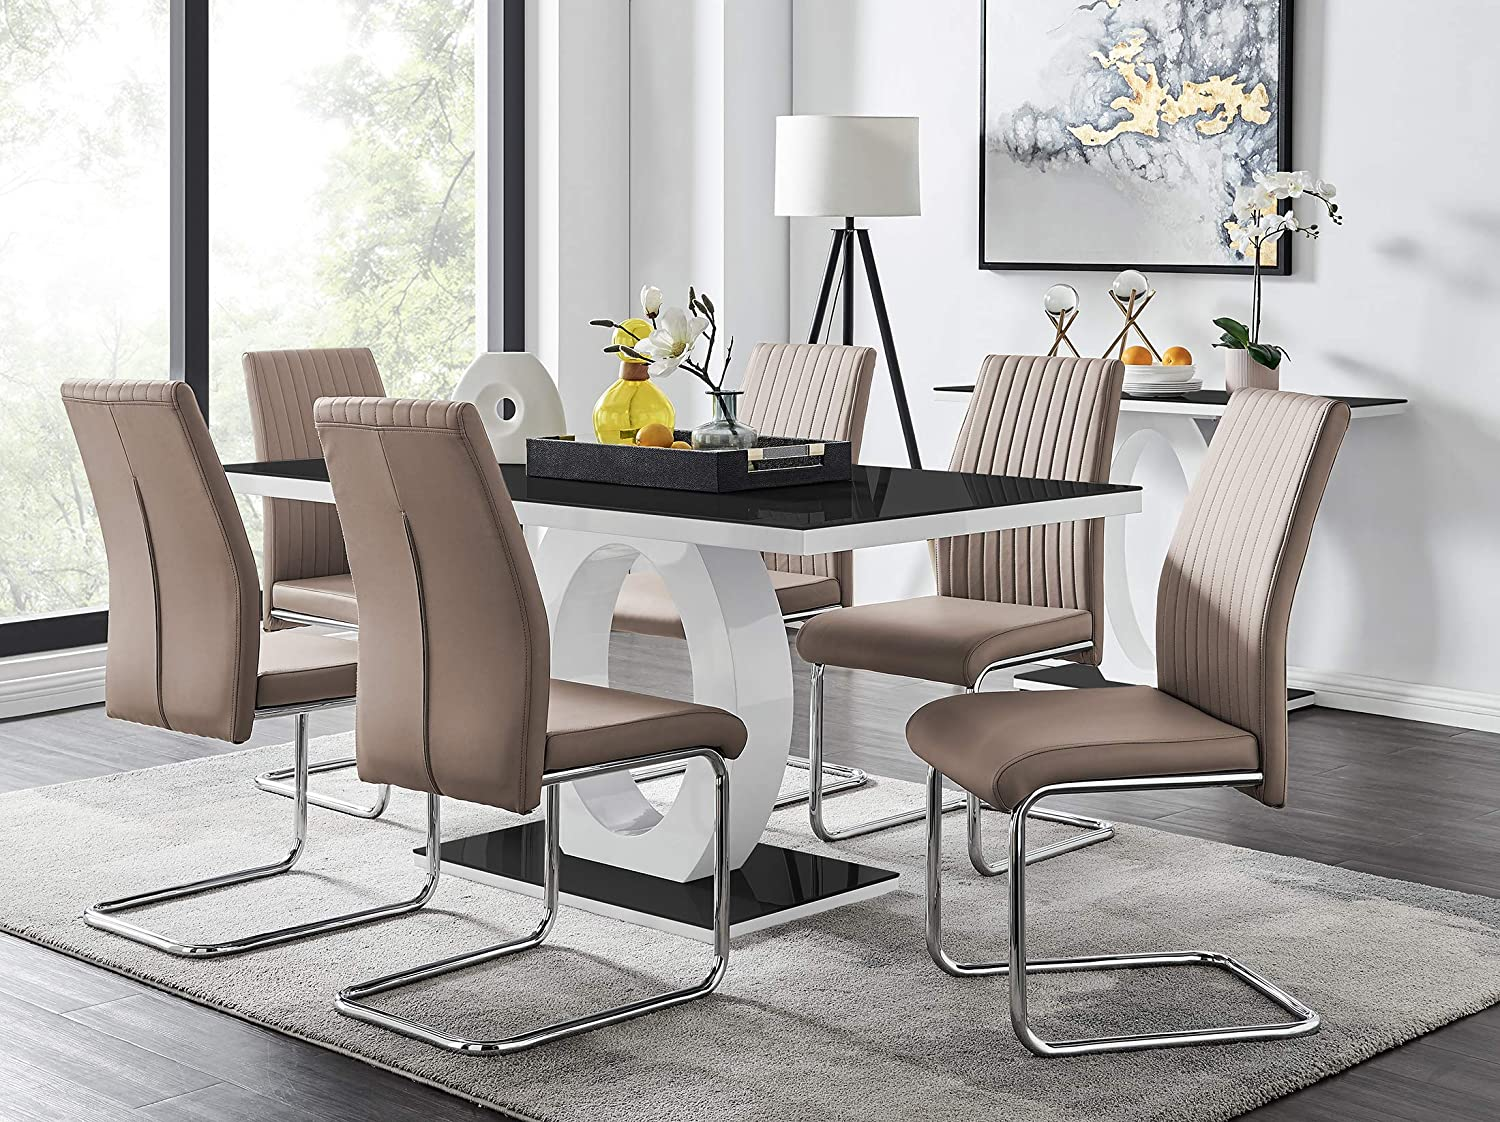 Furniturebox Uk Giovani Modern Black White High Gloss Glass Dining Table Set And 6 Modern Lorenzo Chairs Set Dining Table 6 Beige Cappuccino Grey Chairs Amazon Co Uk Kitchen Home